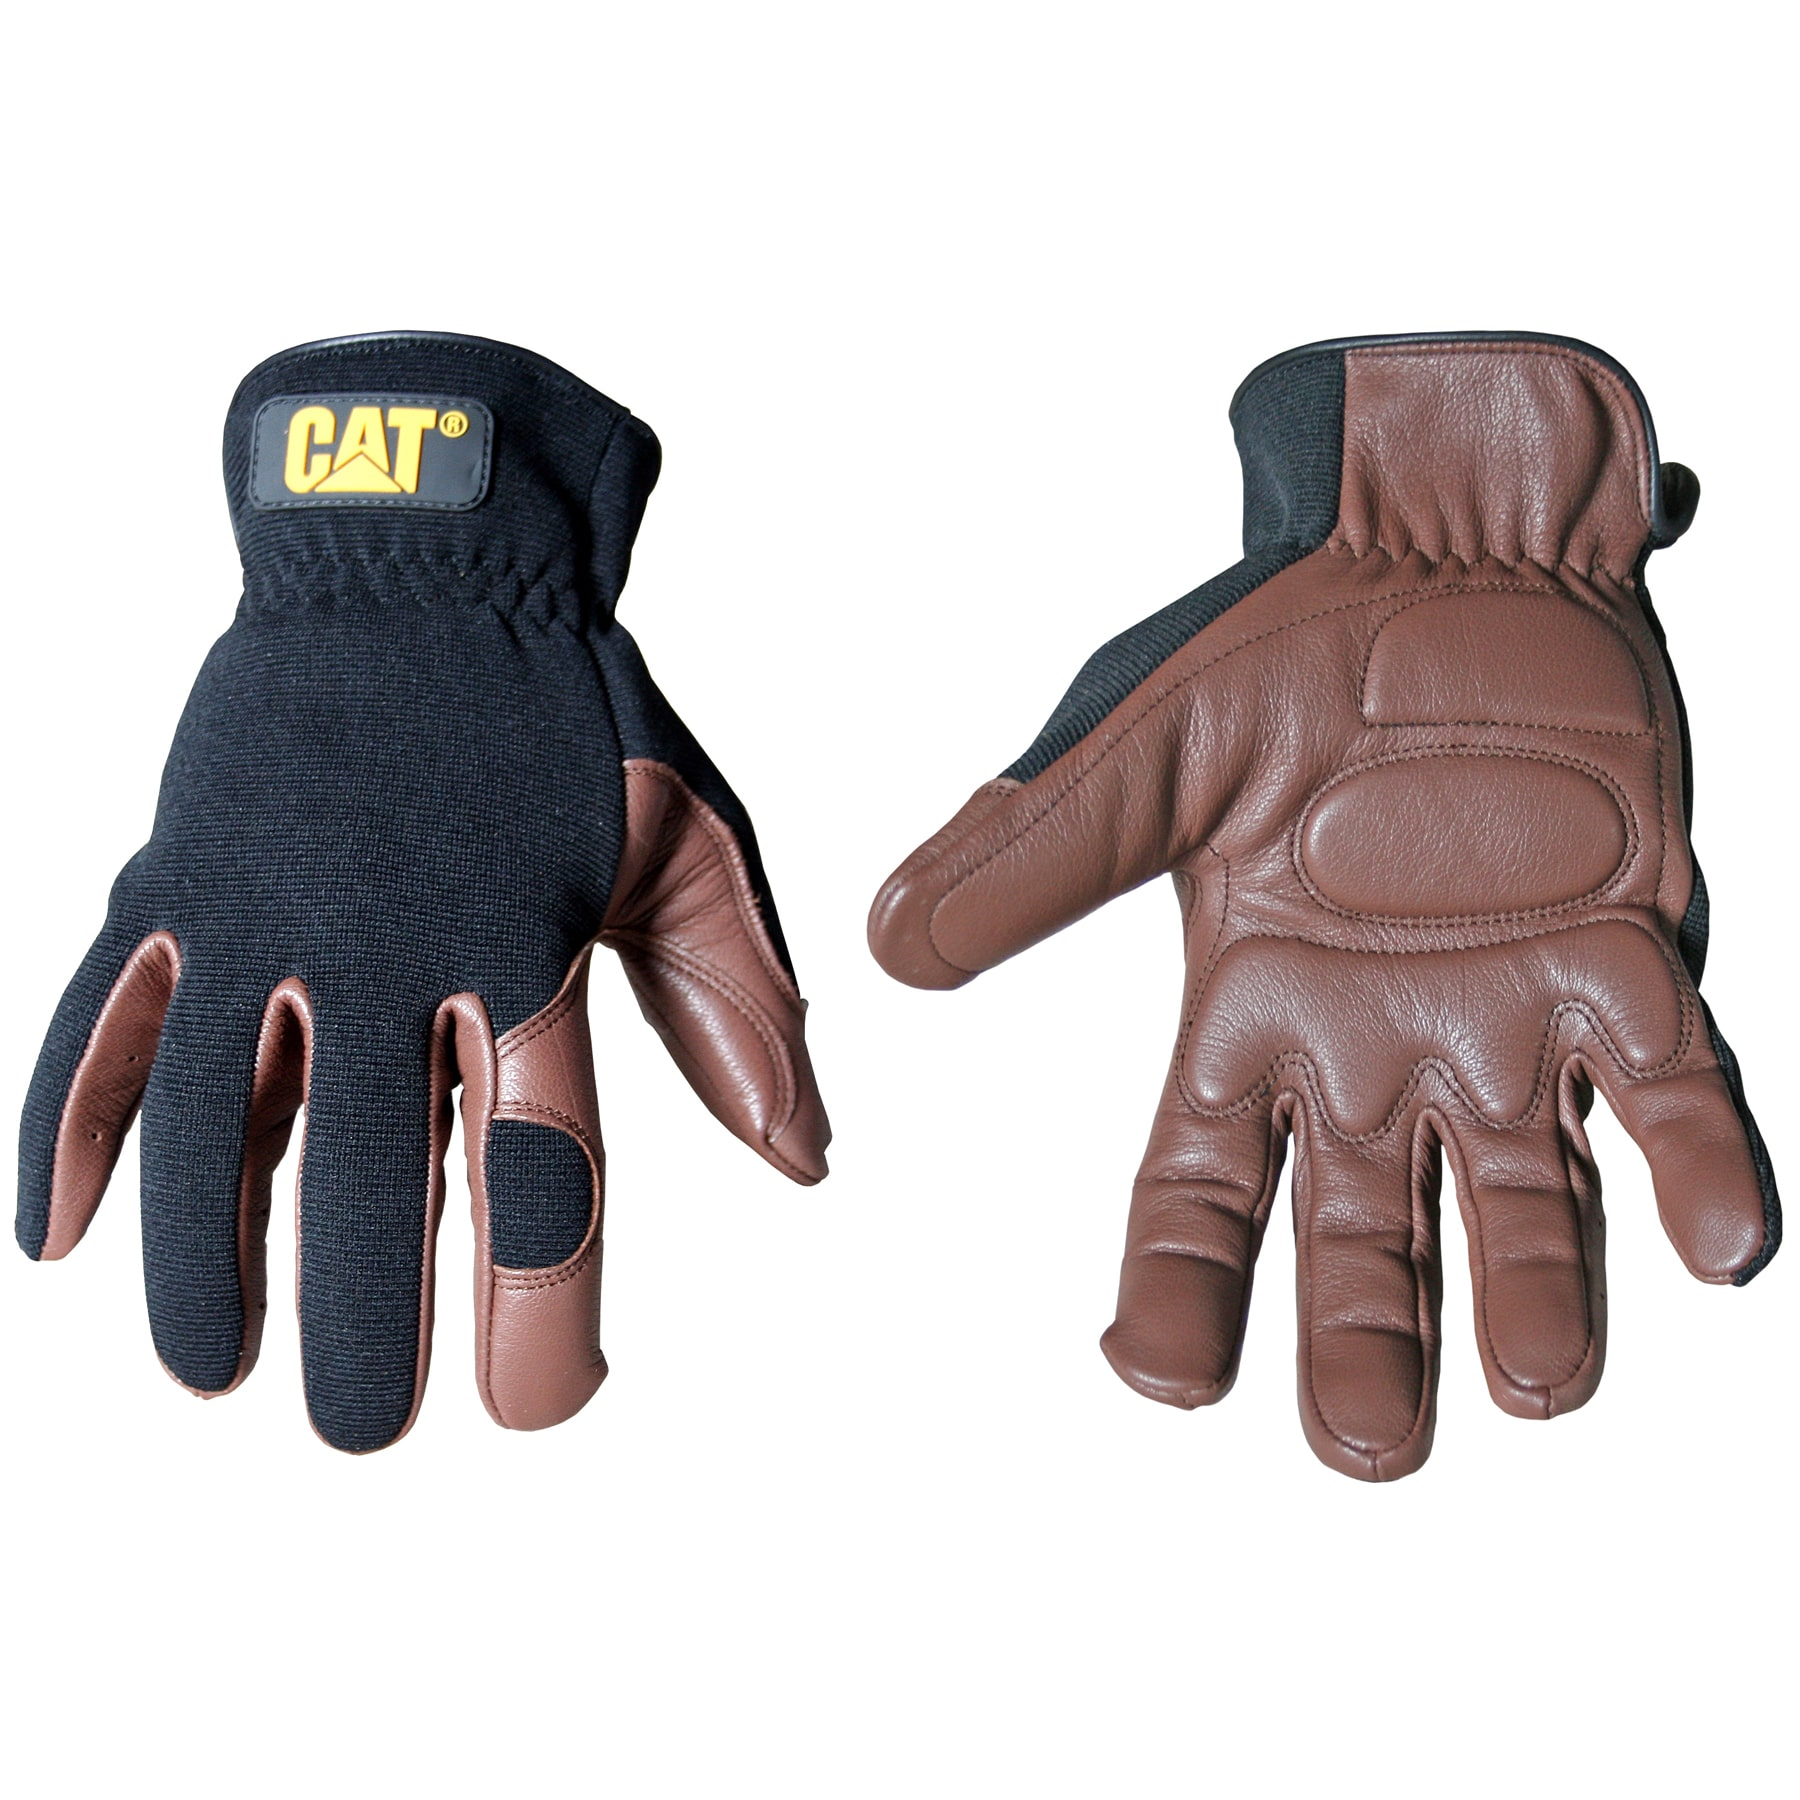 CAT Gel Padded Palm Goat Leather Work Gloves